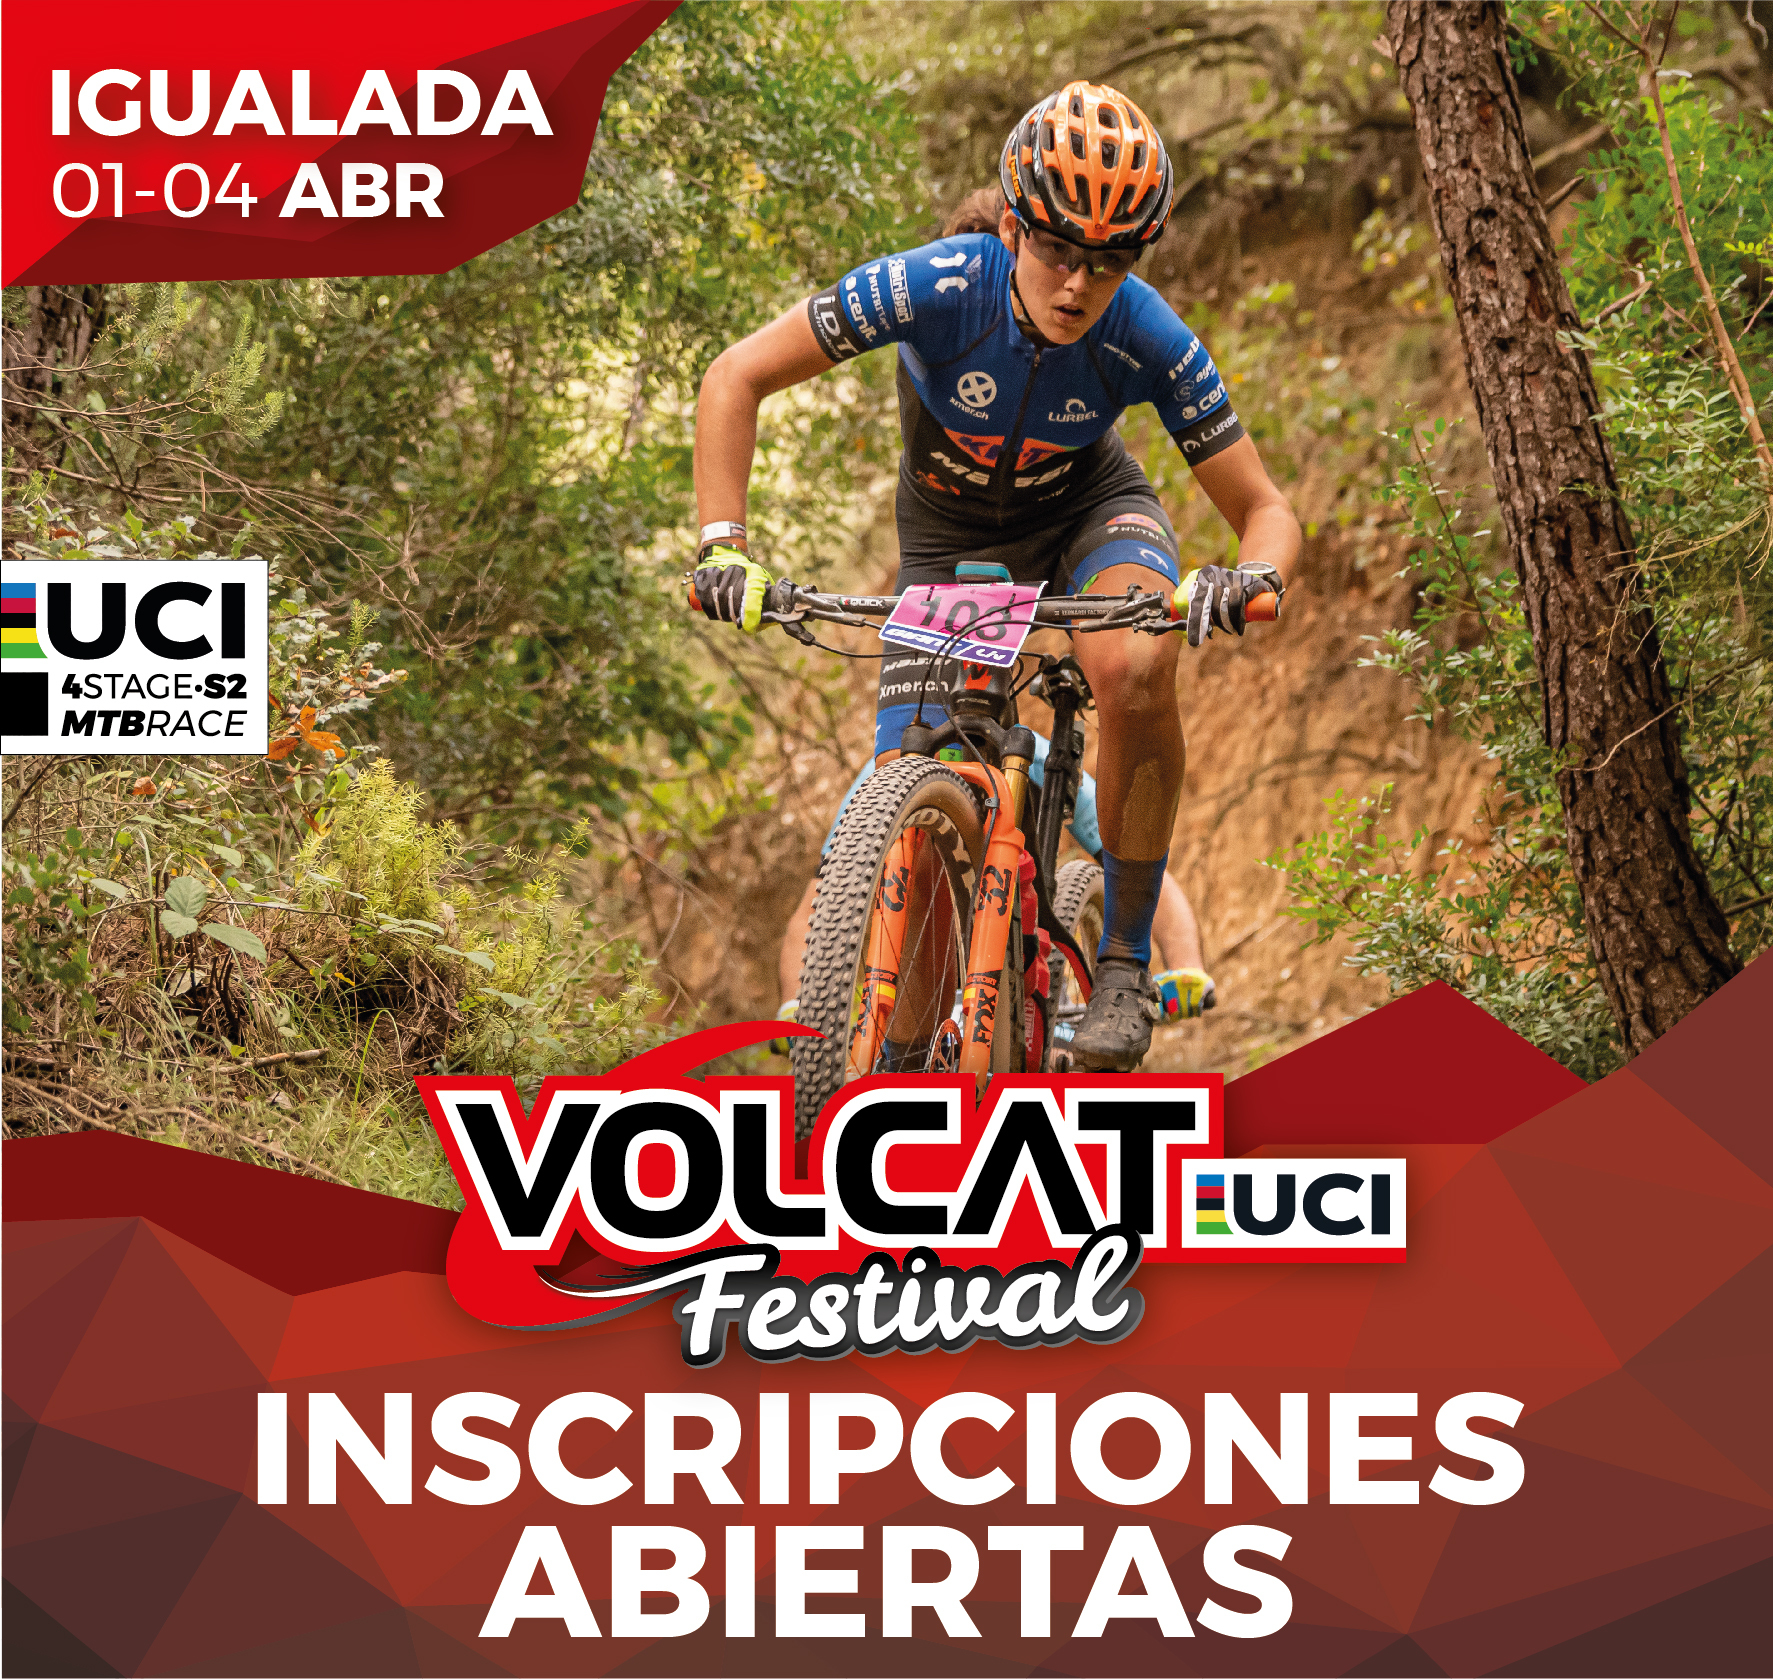 VOLCAT FESTIVAL RETURNS FROM 1 TO 4 APRIL 2021!